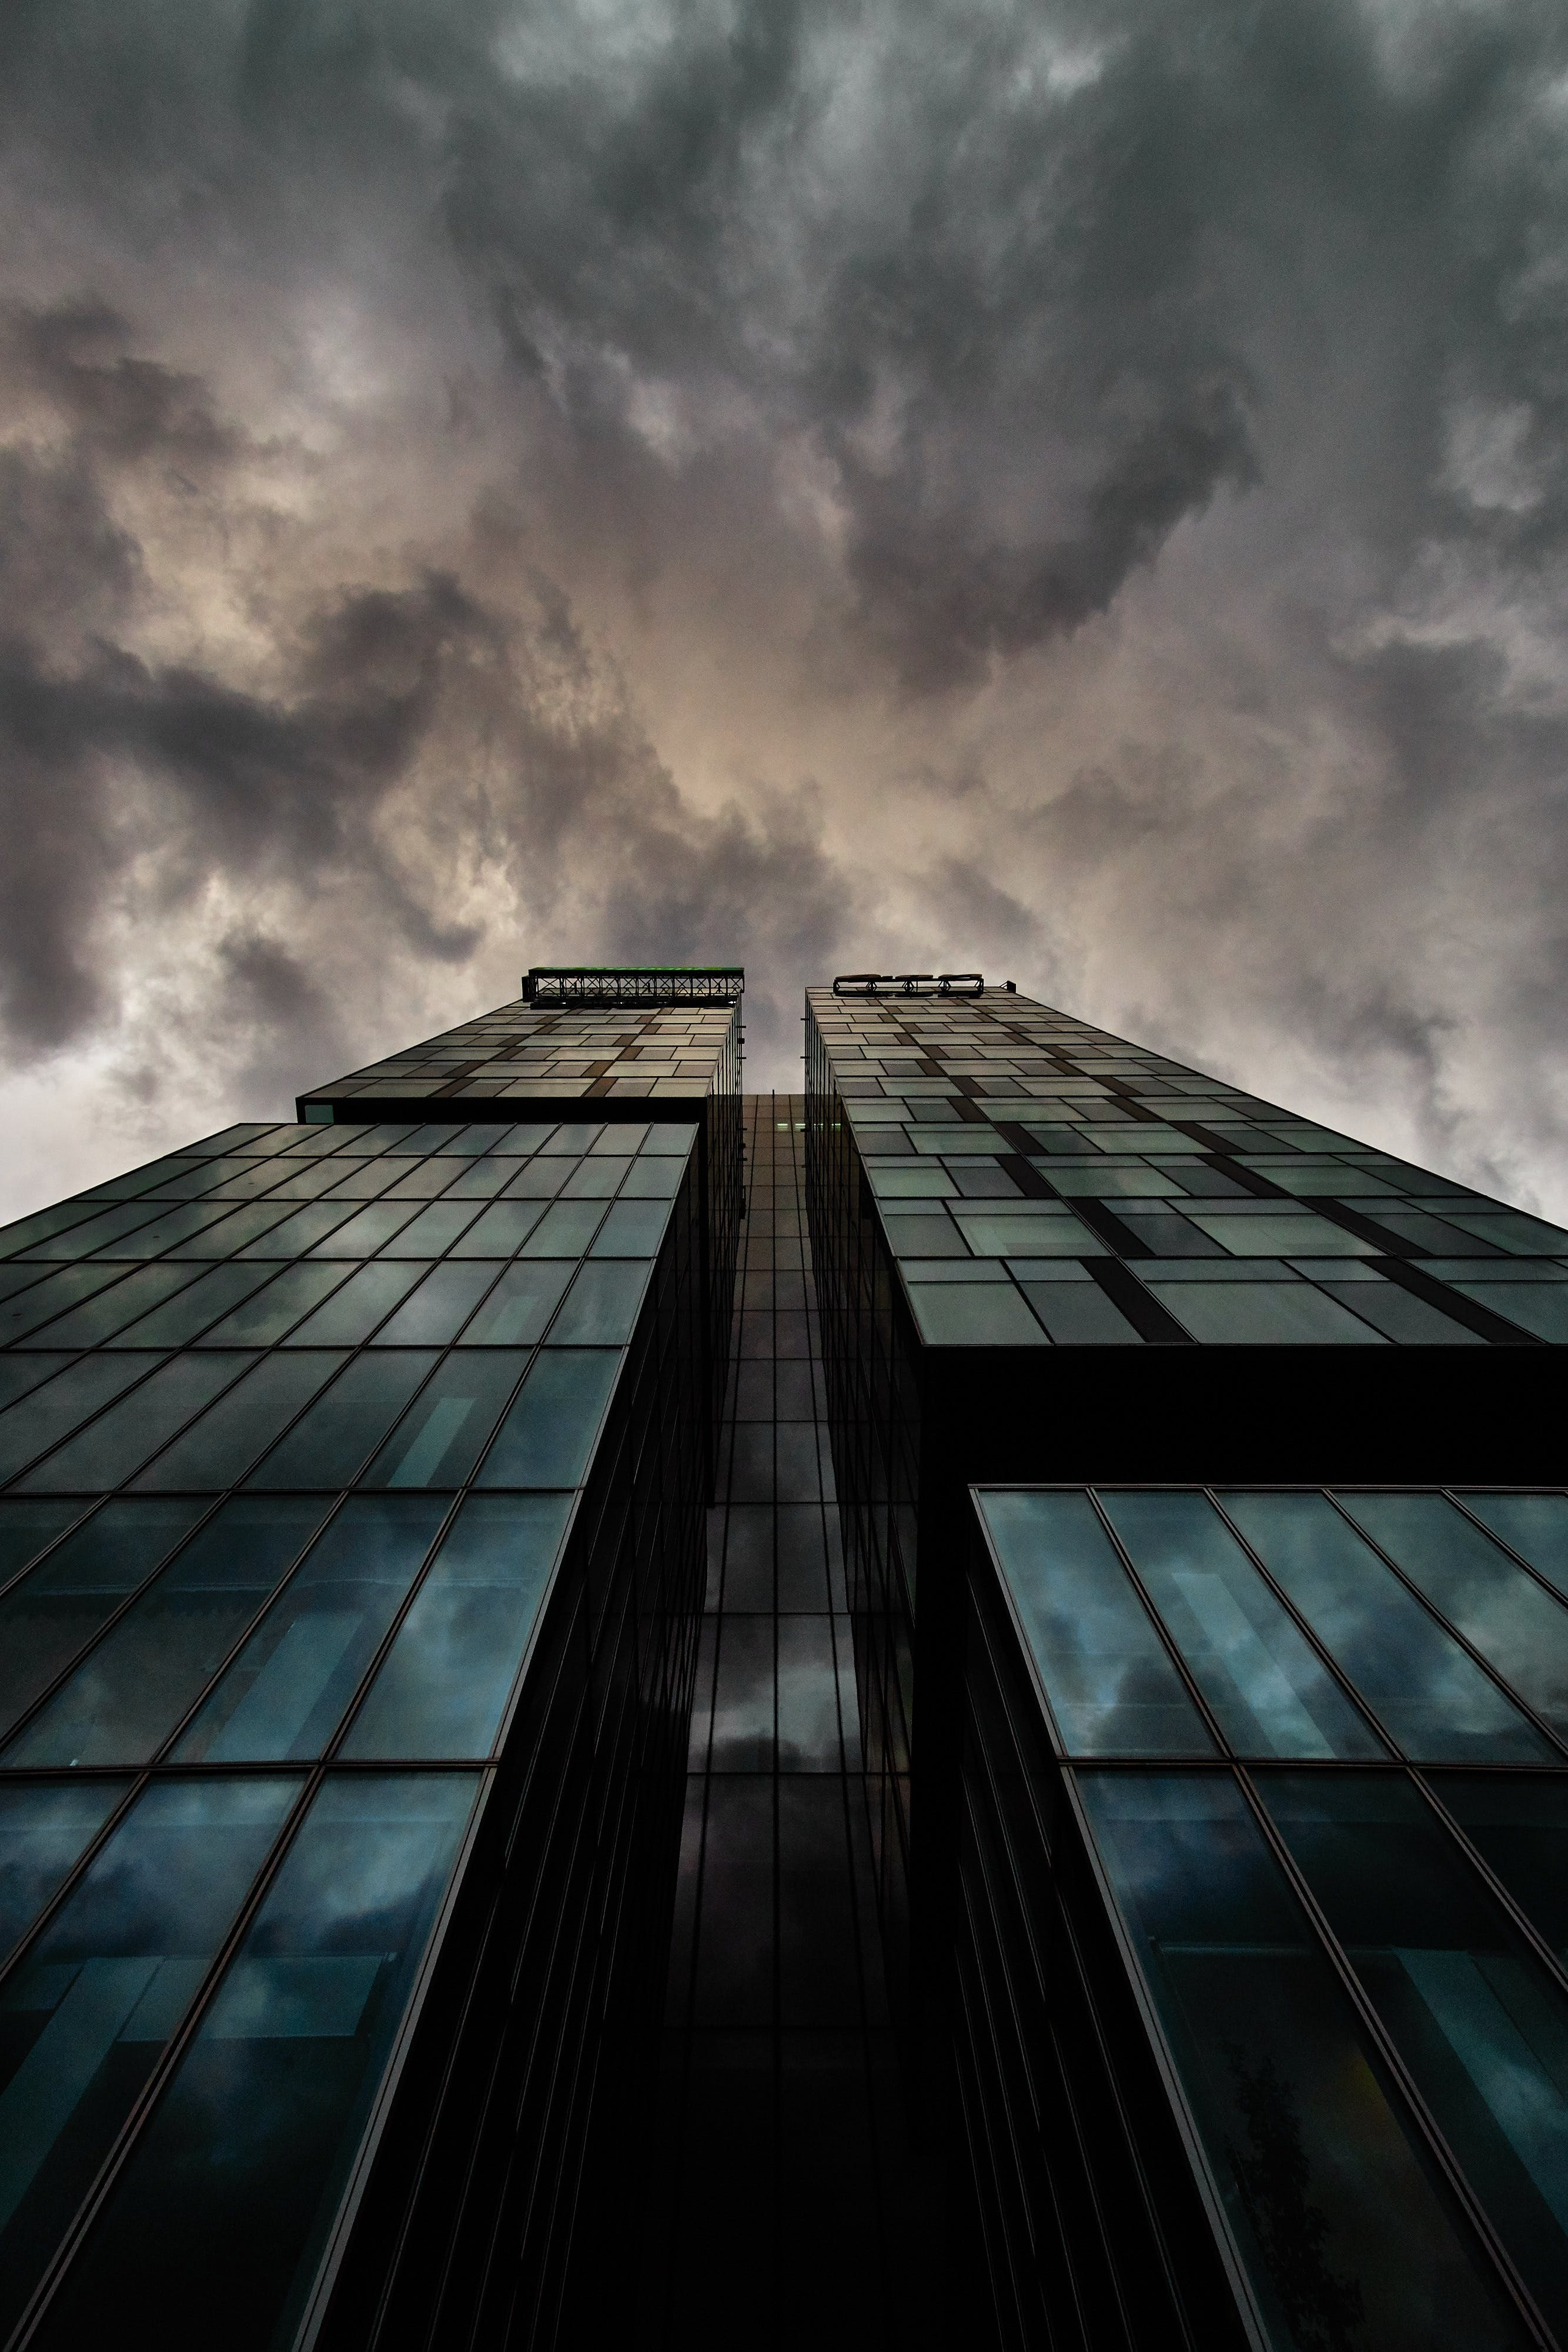 Free stock photo of sky, cloudy, building, glass